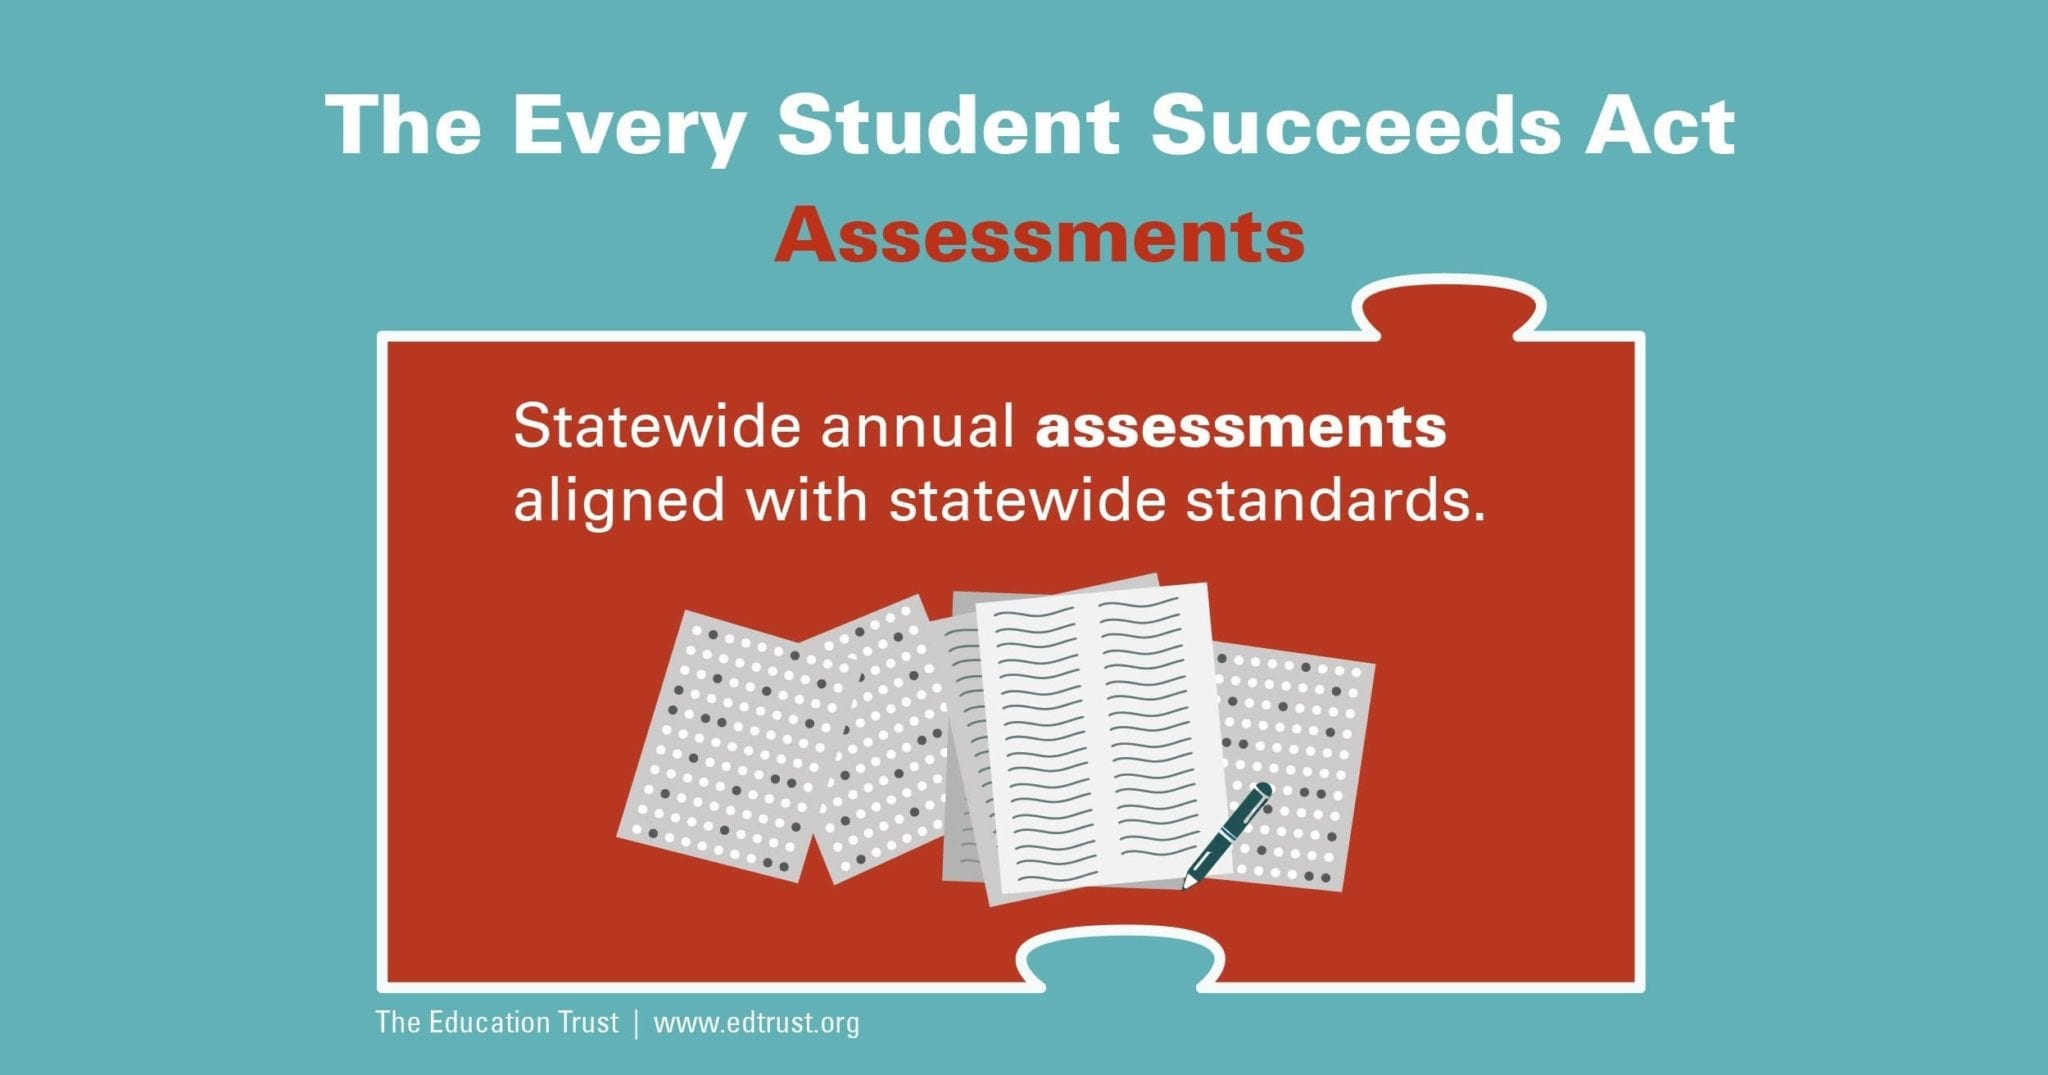 The Every Student Succeeds Act >> What S In The Every Student Succeeds Act Assessments The